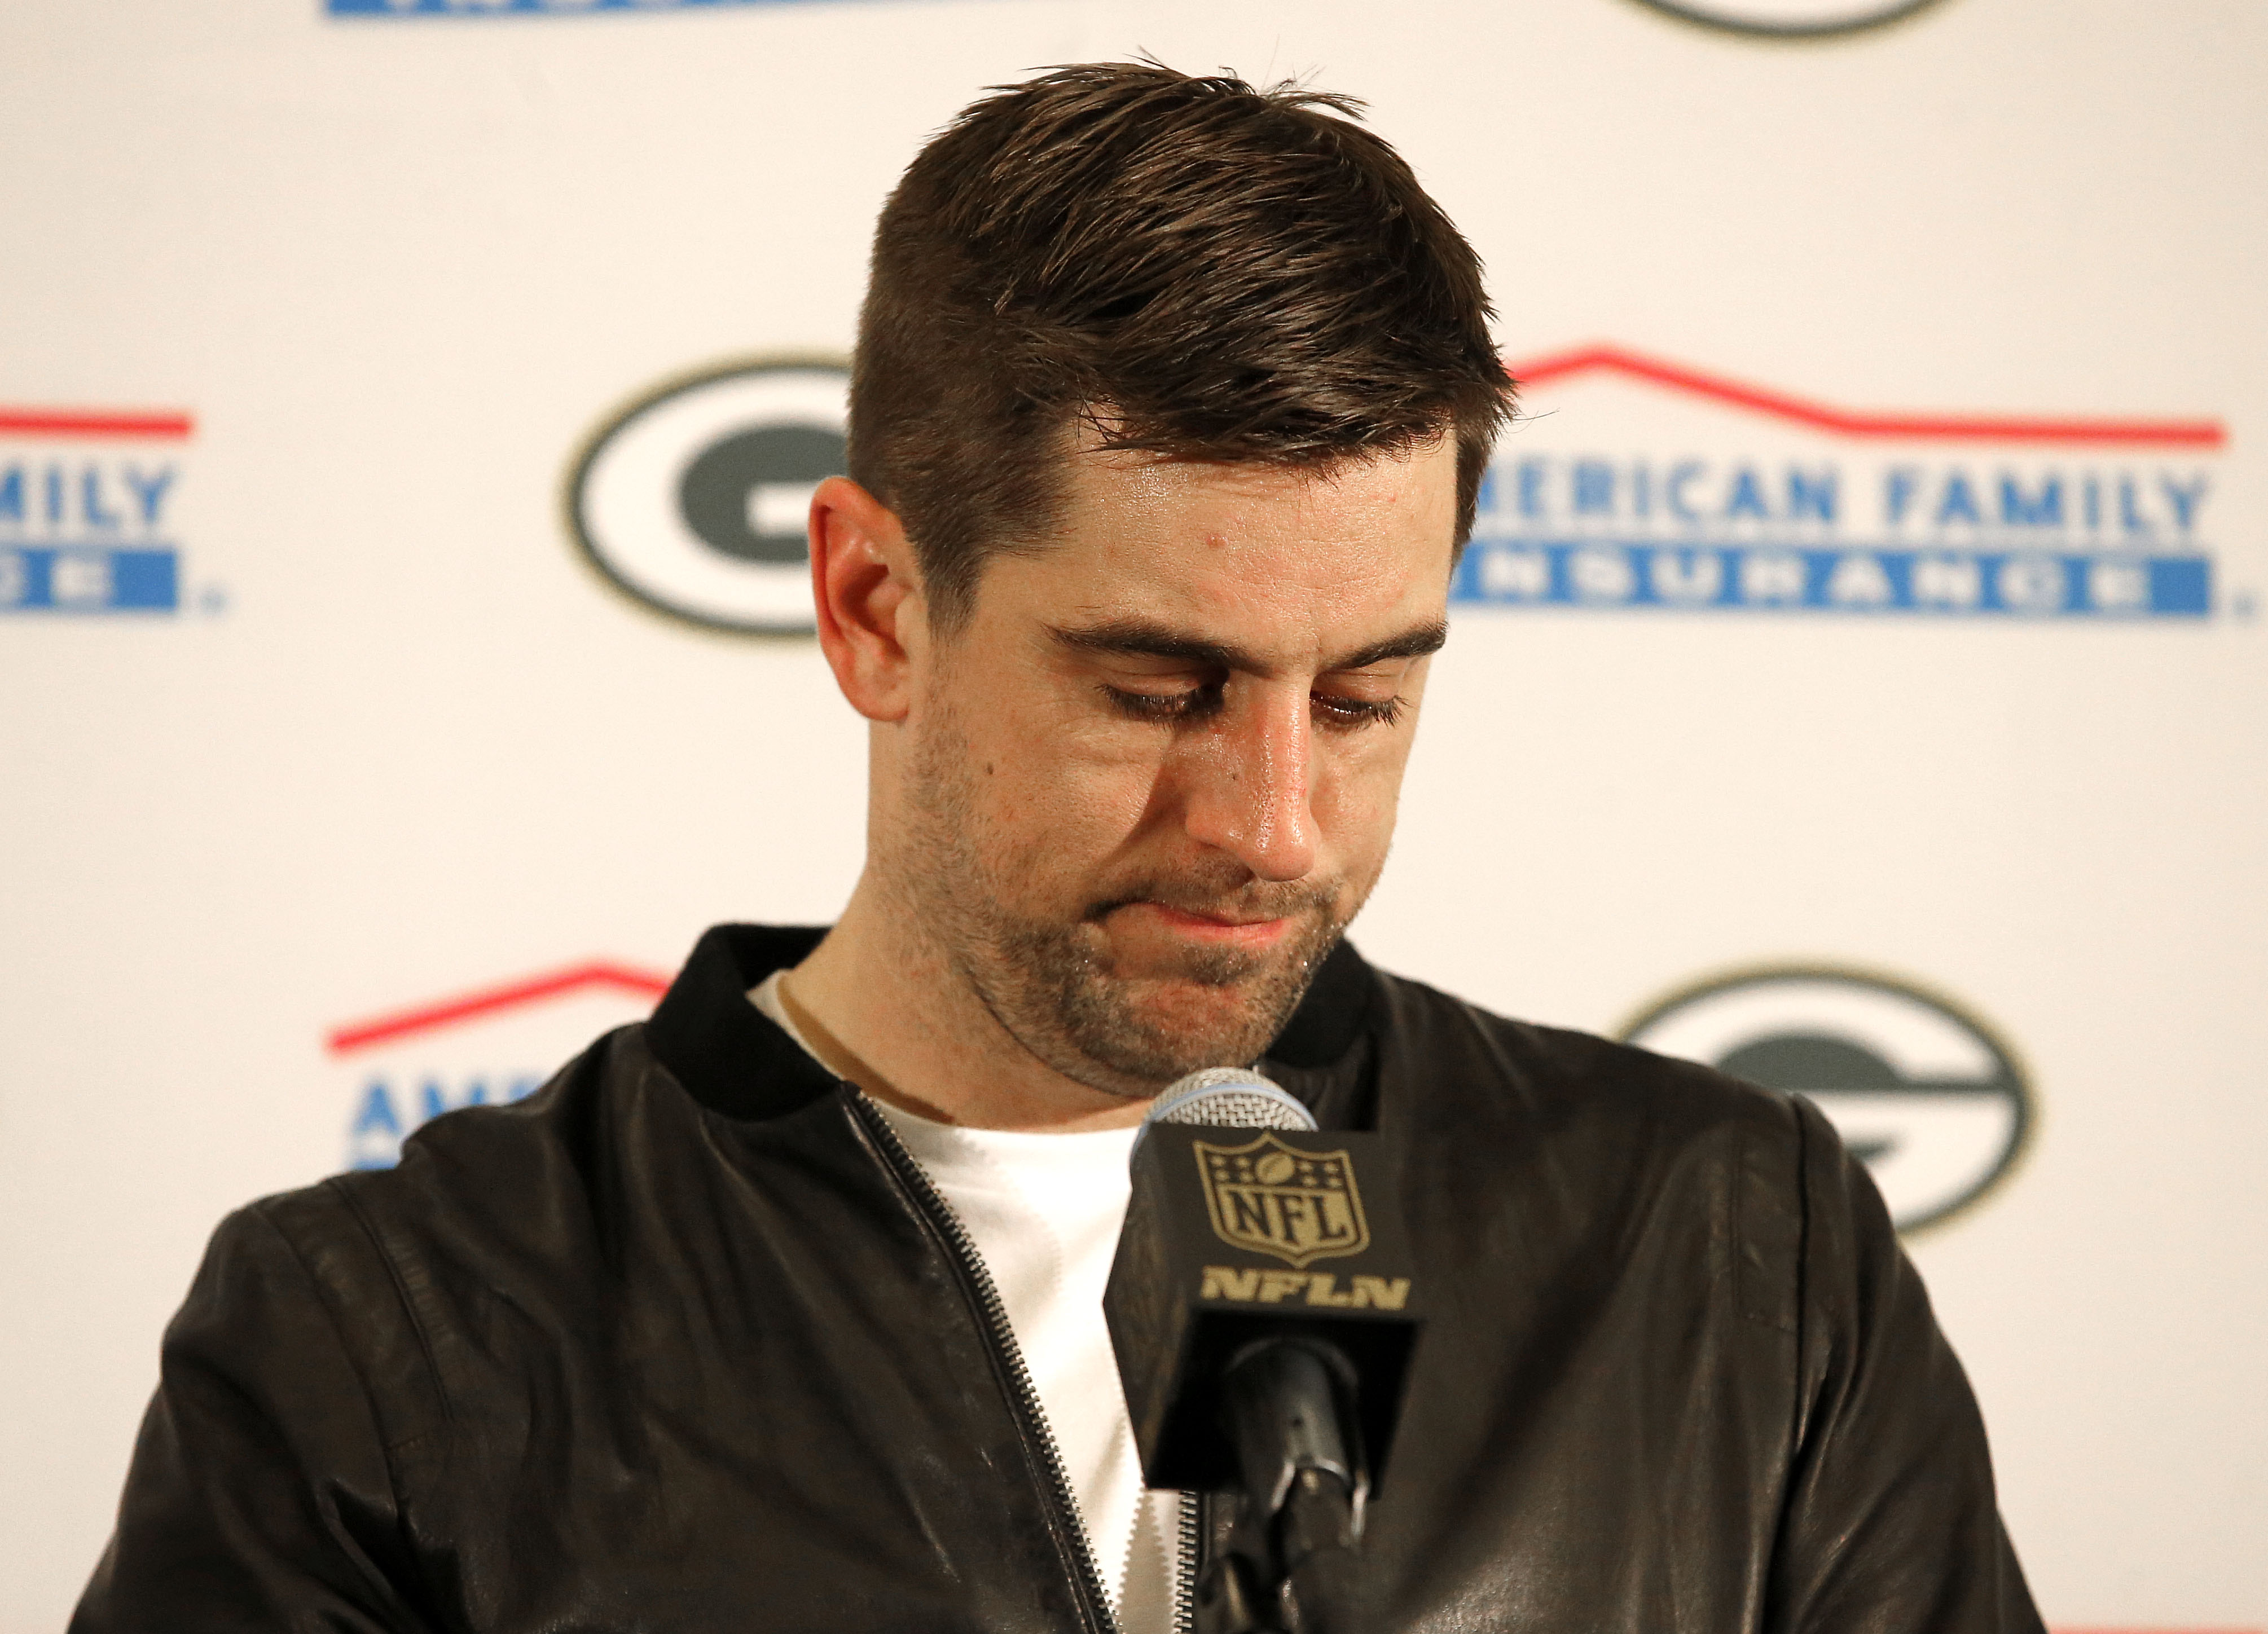 Green Bay Packers quarterback Aaron Rodgers speaks during a news conference after an NFL divisional playoff football game against the Arizona Cardinals, Saturday, Jan. 16, 2016, in Glendale, Ariz. The Cardinals won 26-20 in overtime. (AP Photo/Ross D. Fra